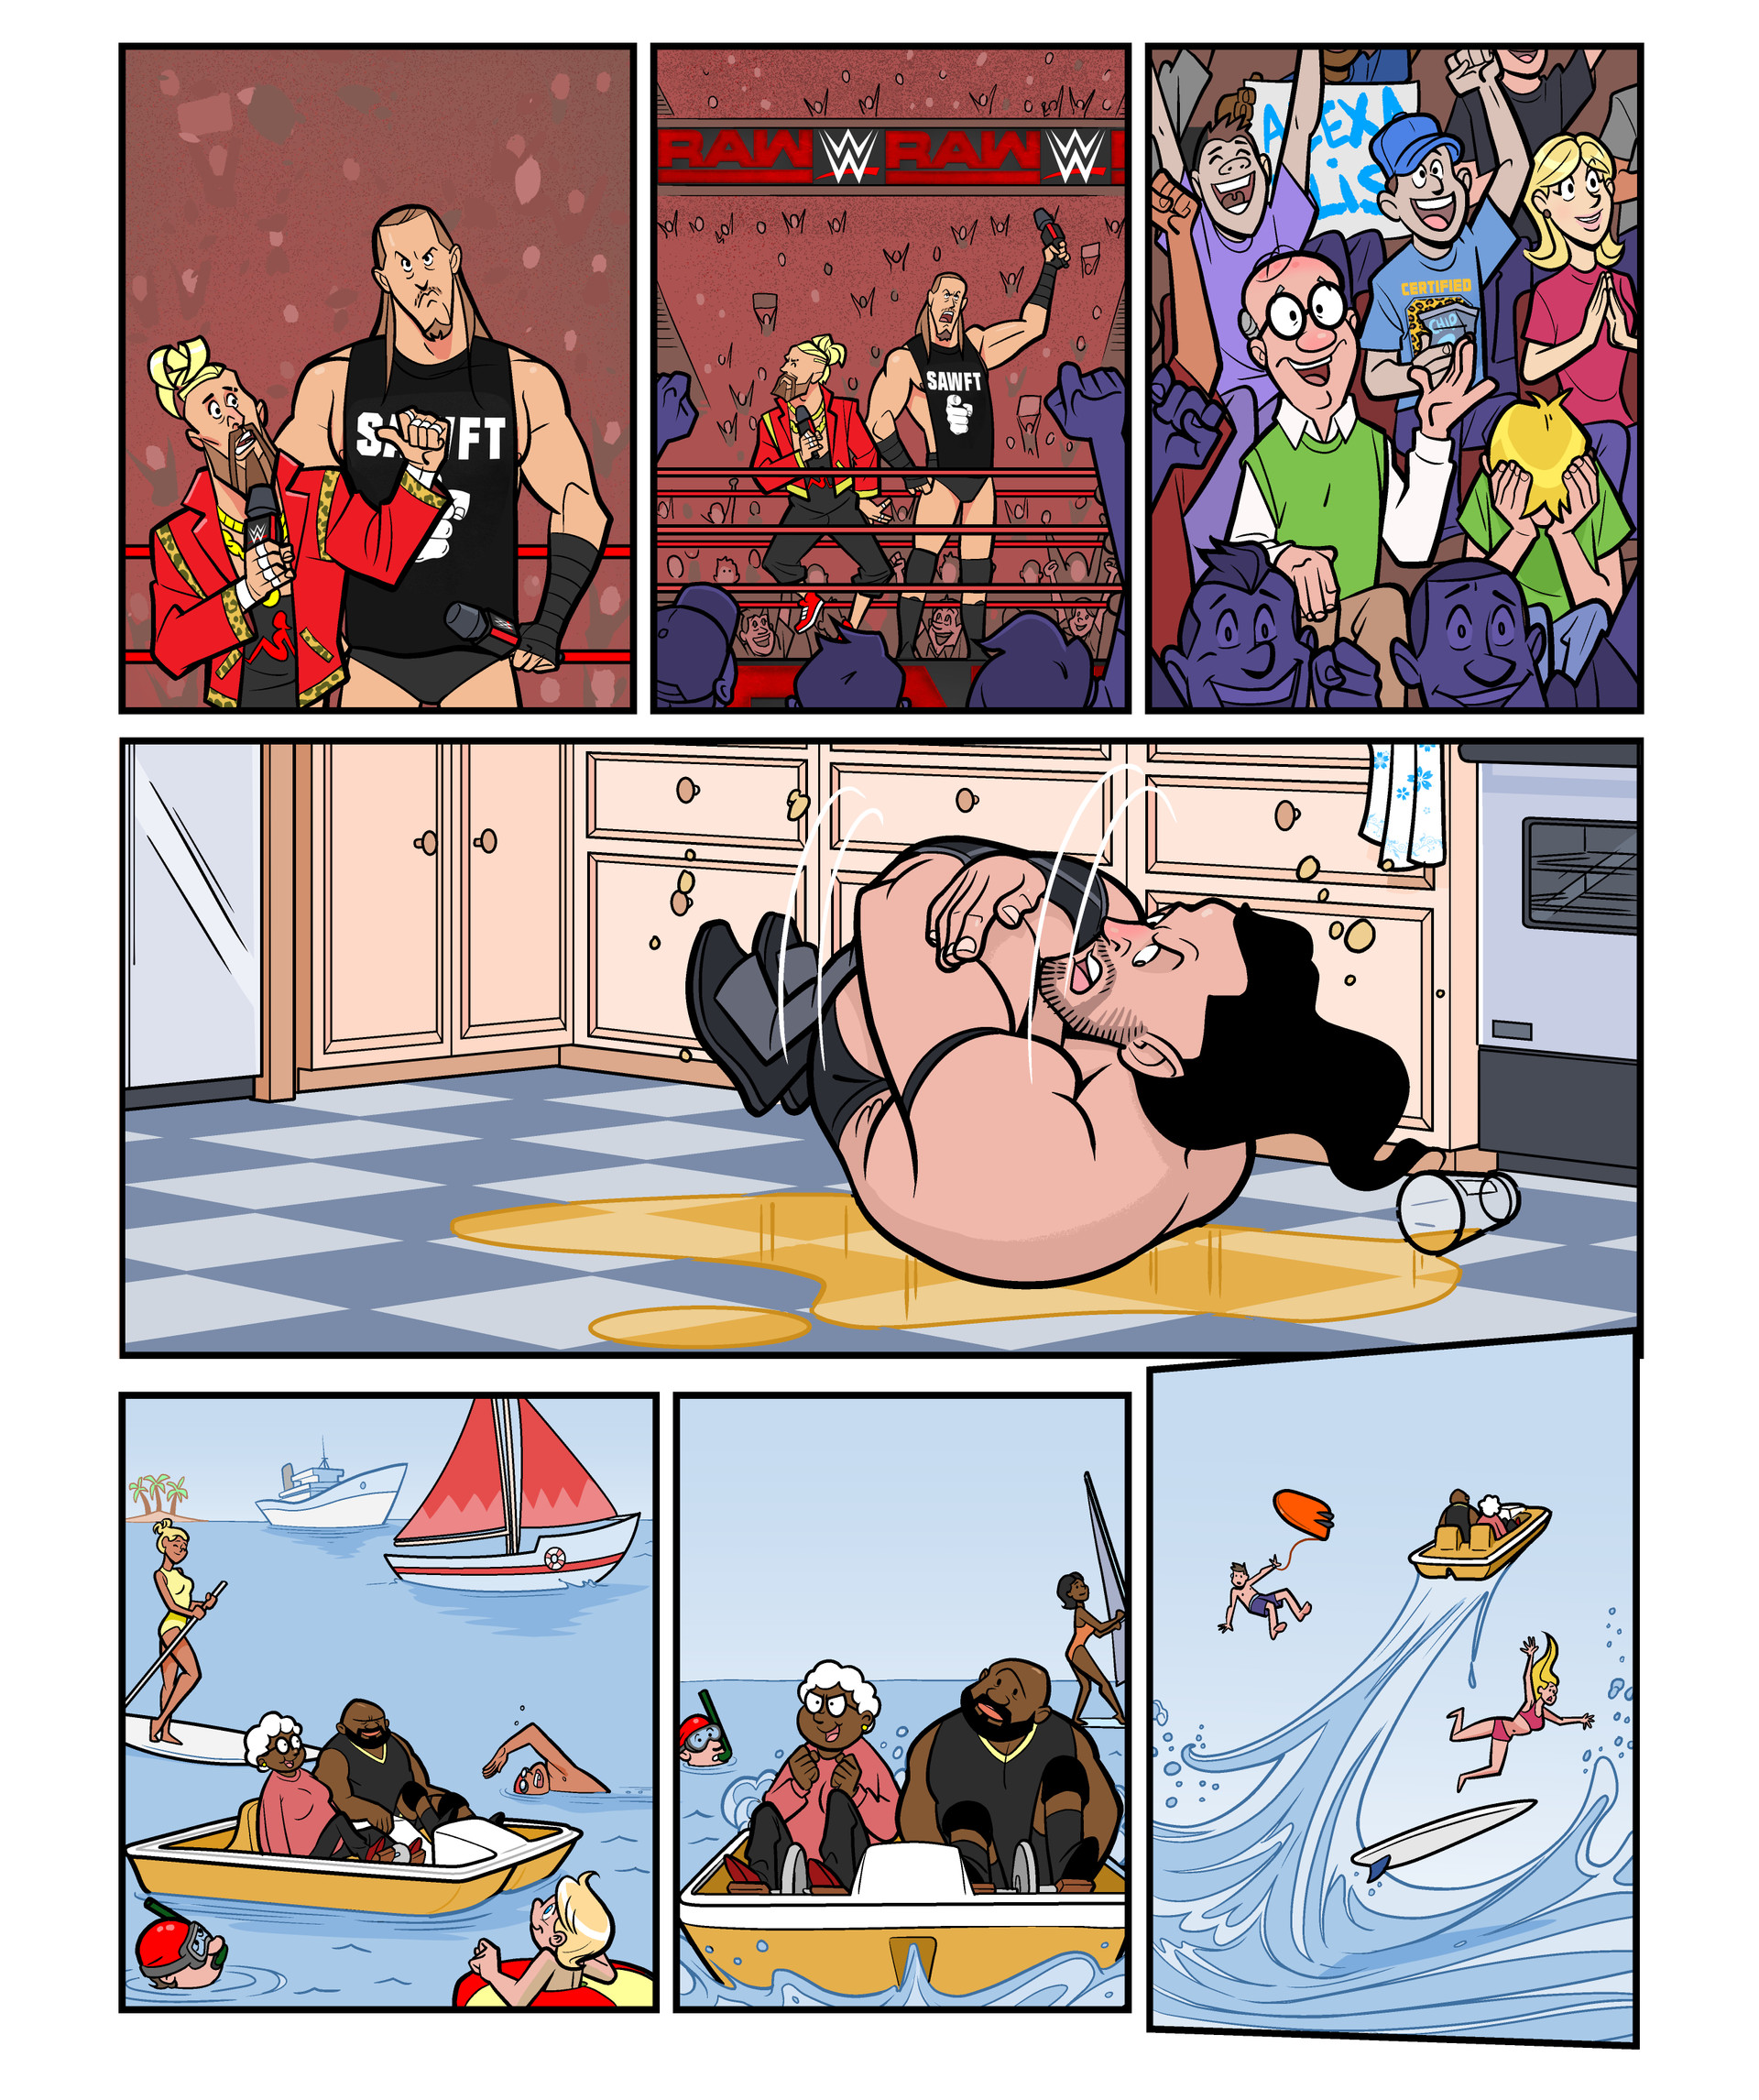 WWE RAW comic strips for WWE Kids Magazine #125